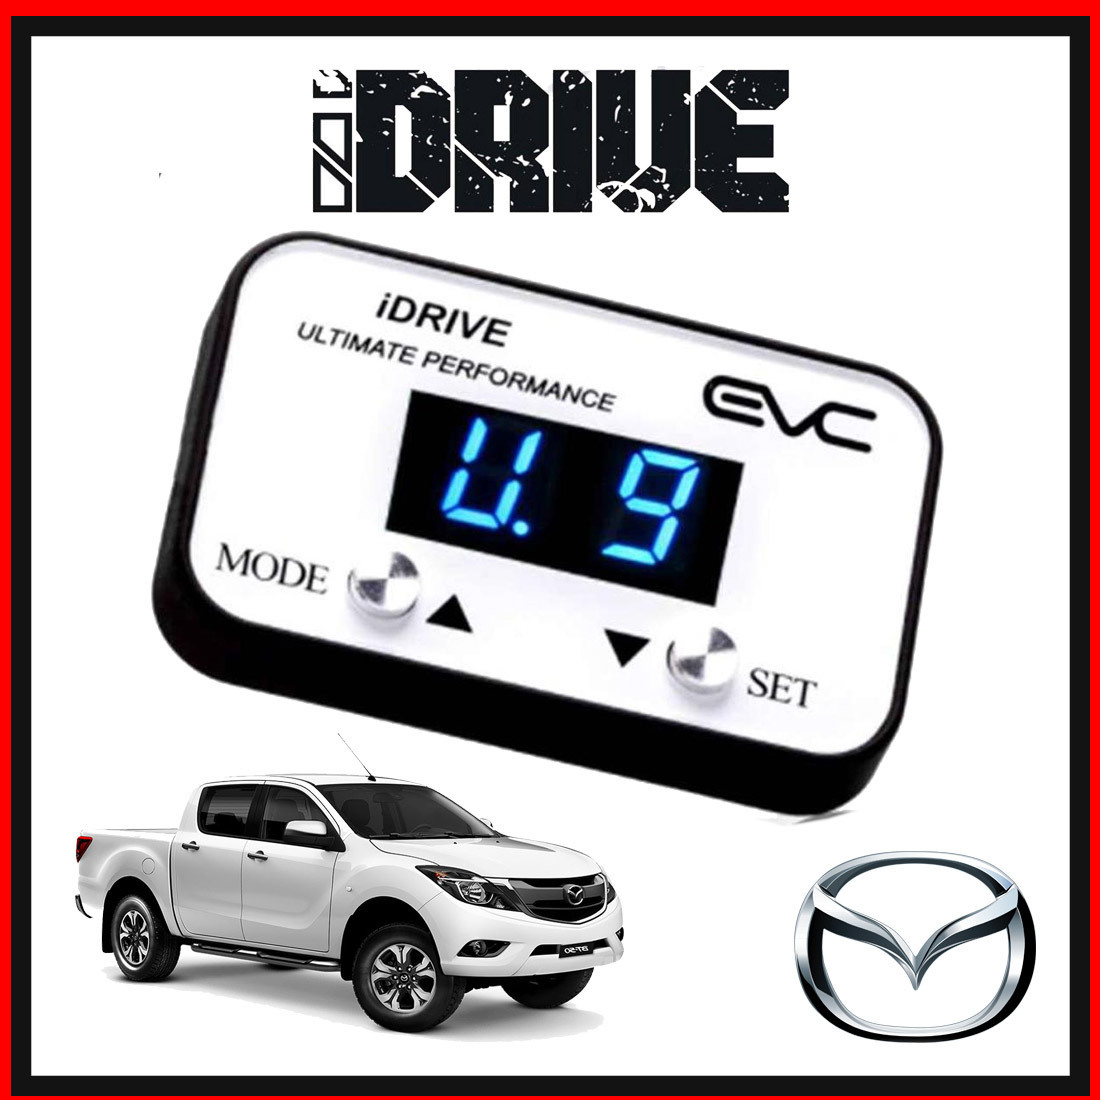 iDrive Windbooster Throttle Controller (Mazda) image